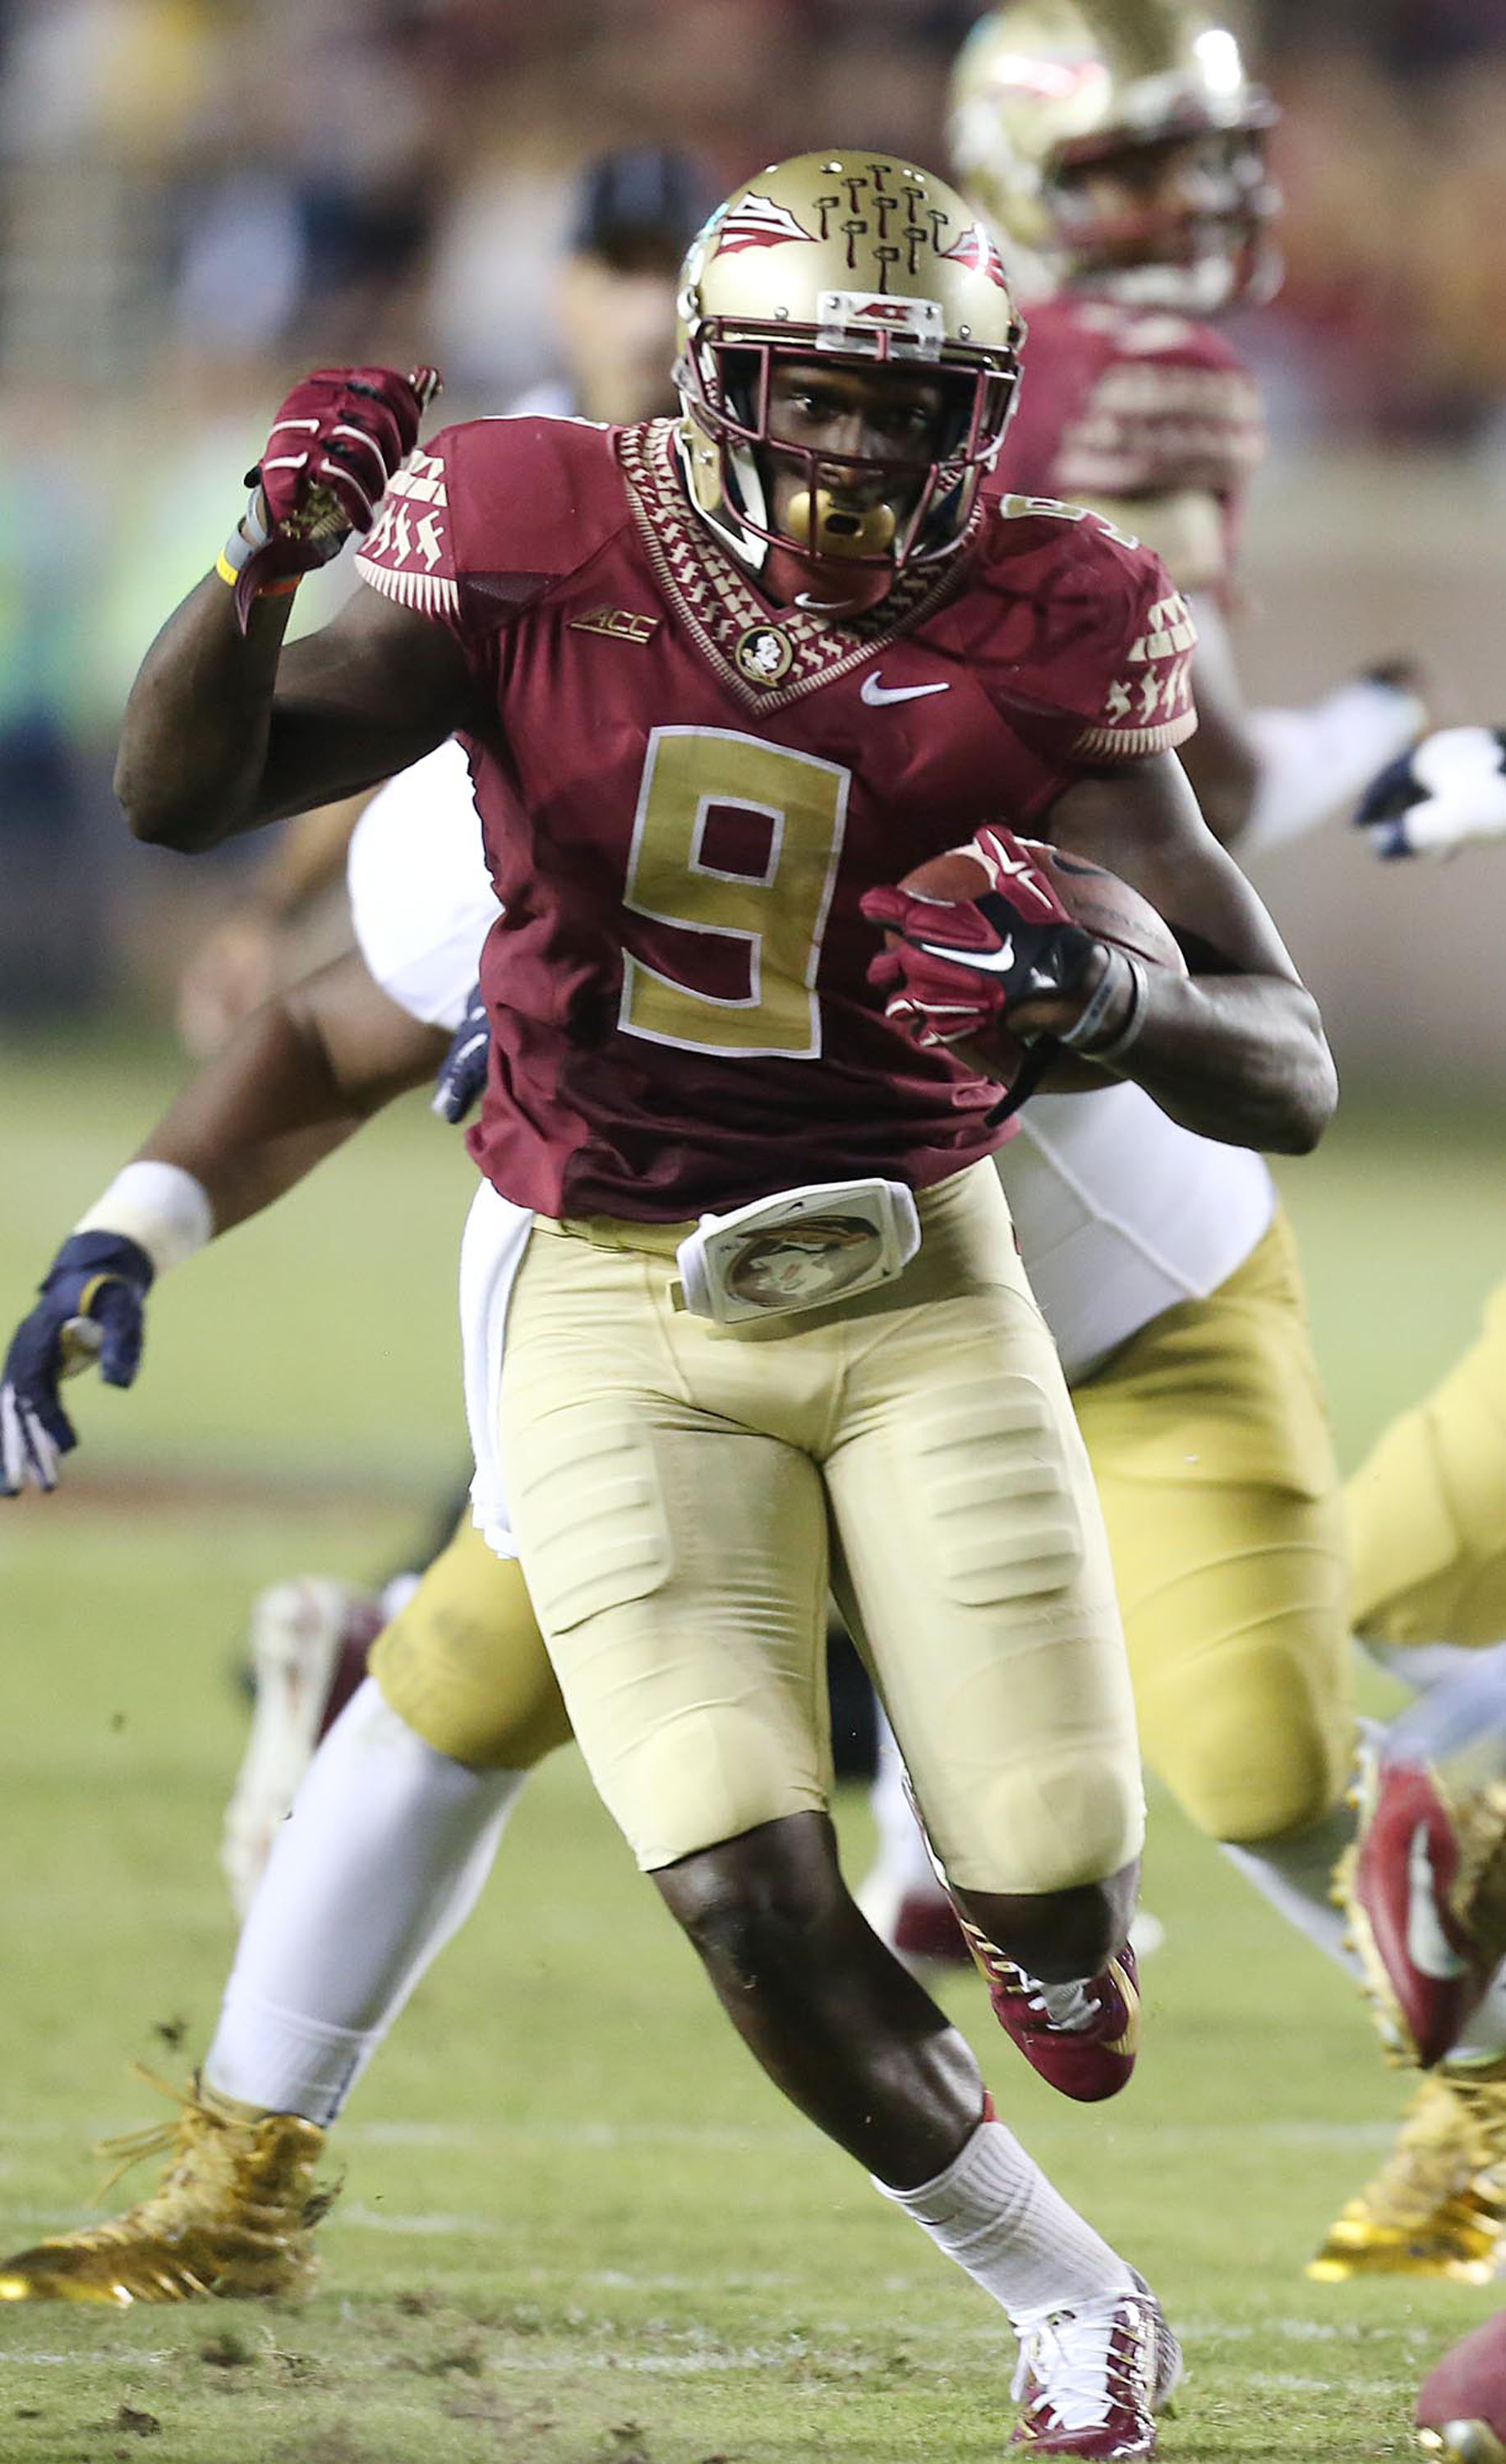 Florida State running back Karlos Williams picks up yards against Notre Dame at Doak Campbell Stadium in Tallahassee, Fla., on Saturday, Oct. 18.